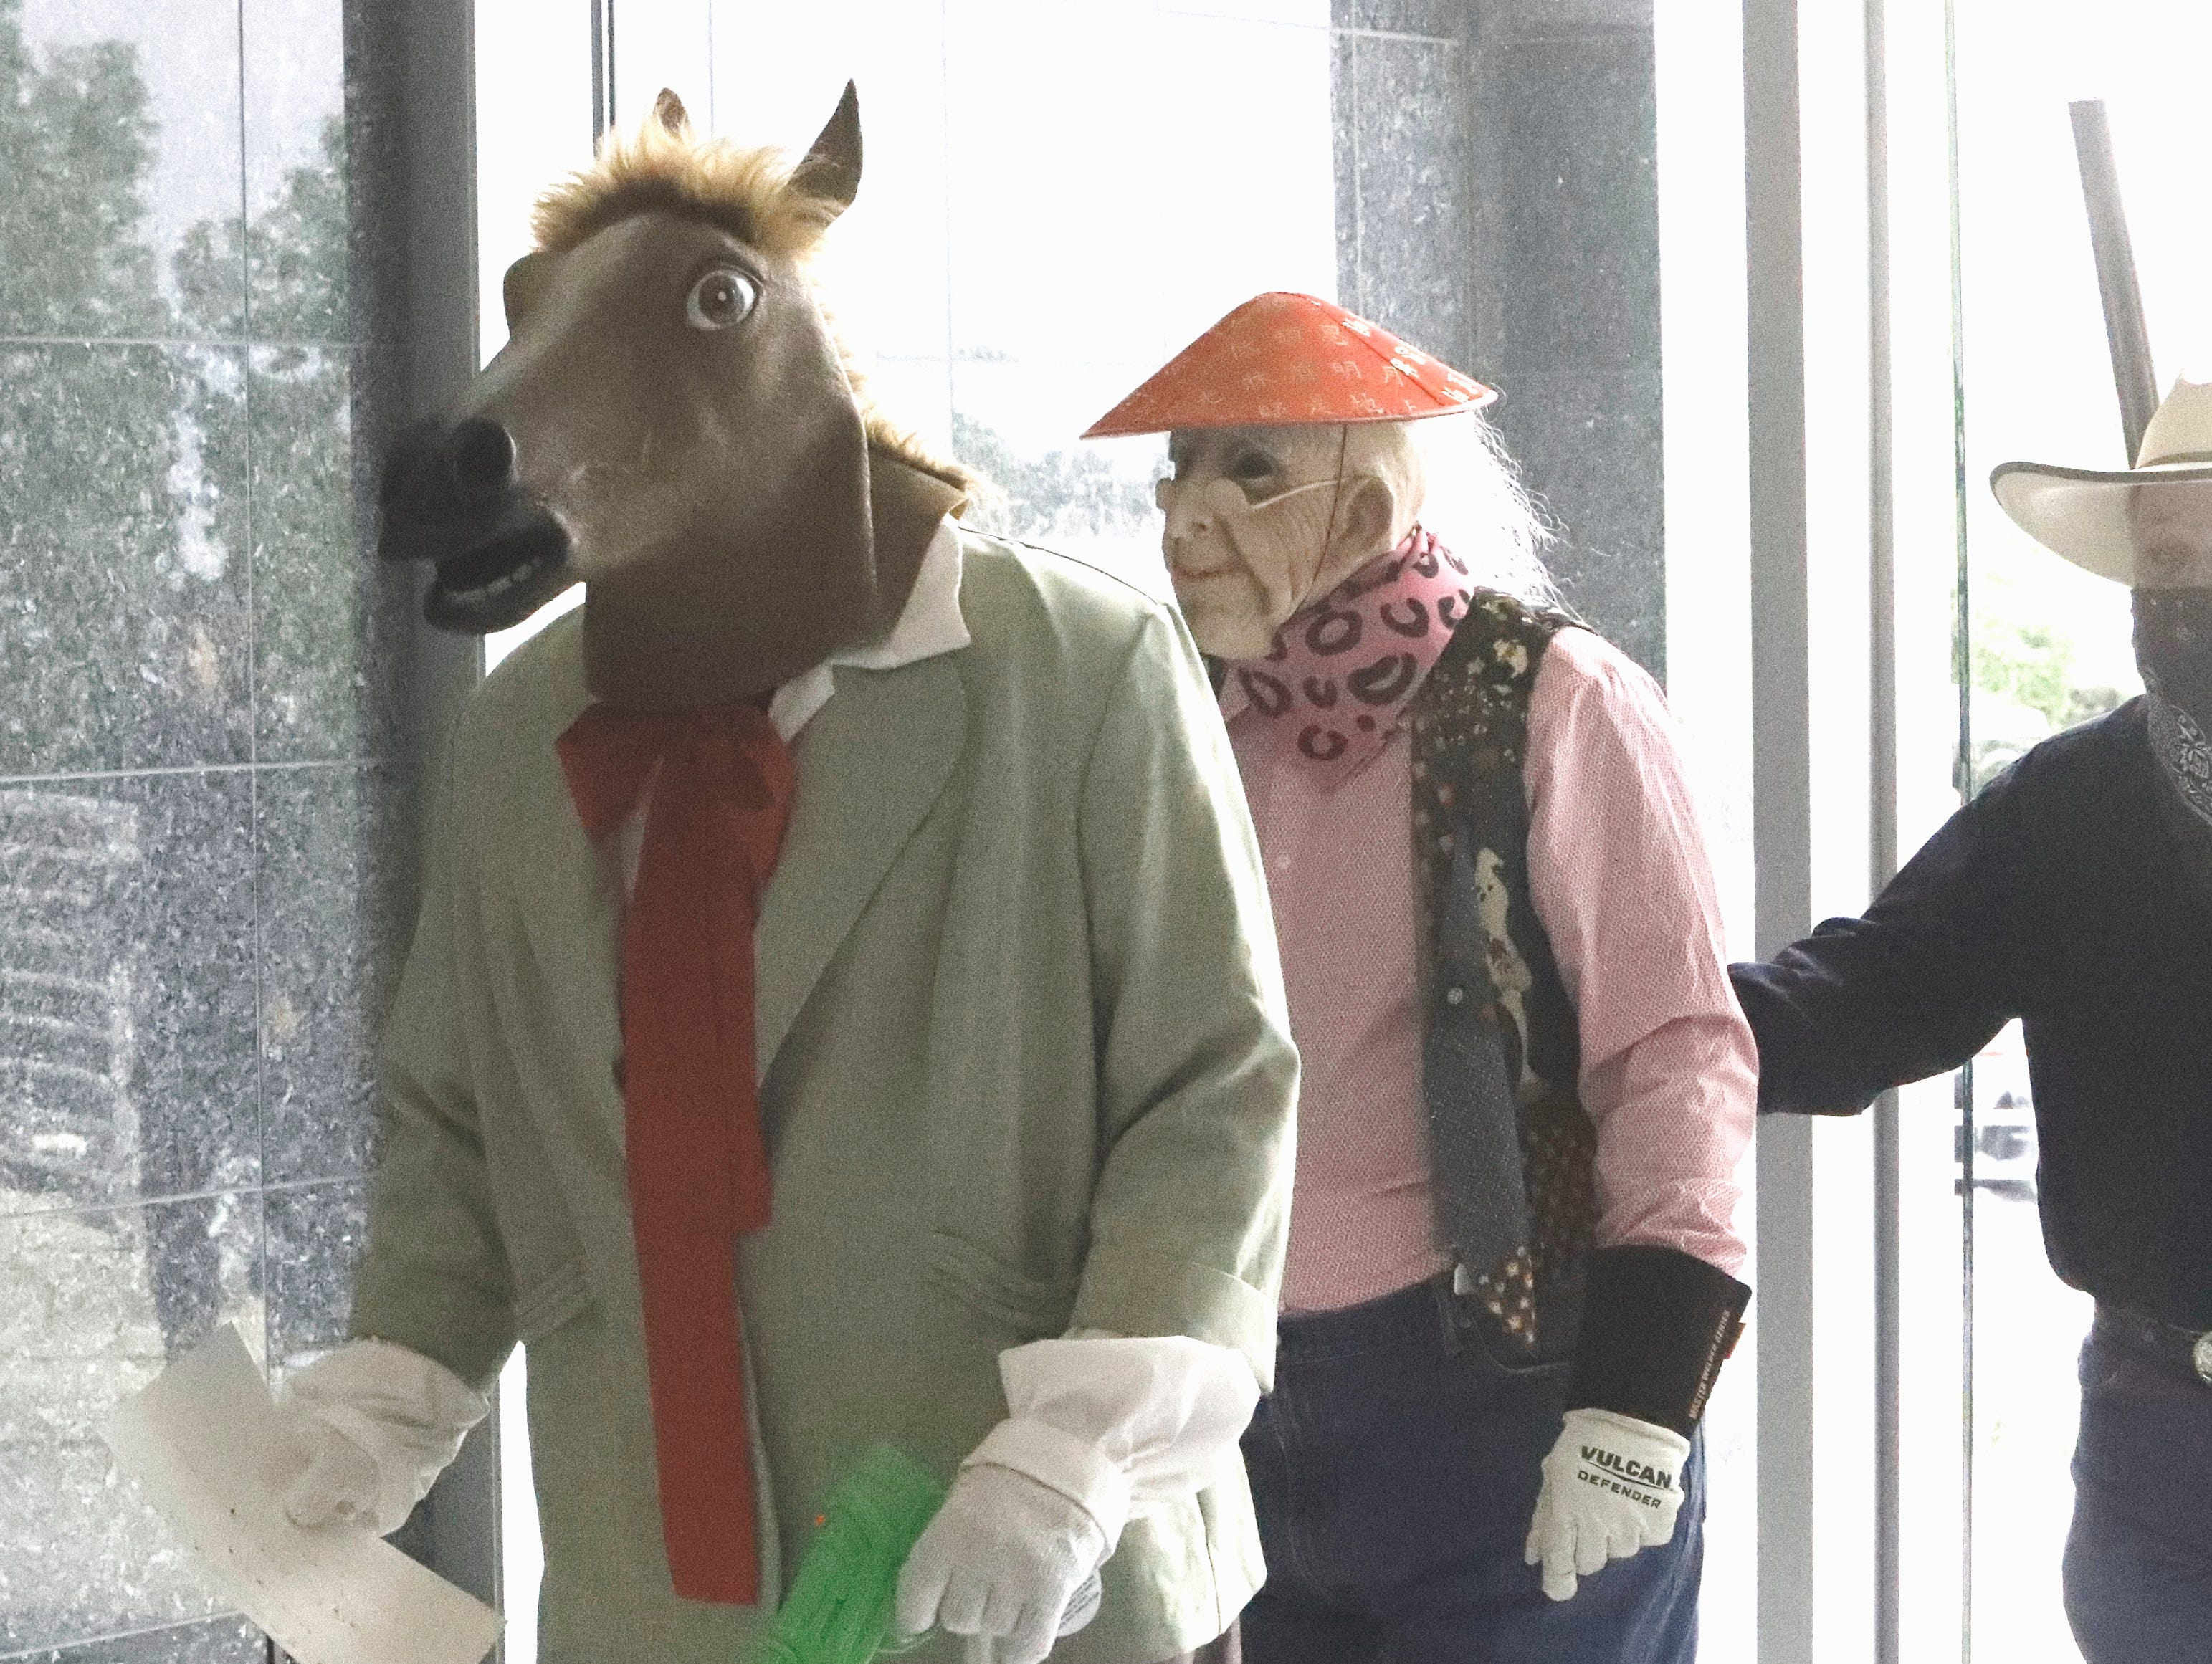 The Lone Stranger and Sidekick pulled off a fake heist Tuesday, May 14, 2019, at Golden Valley Bank on Hemsted Drive. The mock robbery is part of Rodeo Week and staged by the Asphalt Cowboys, who weren't able to catch the duo during the getaway.